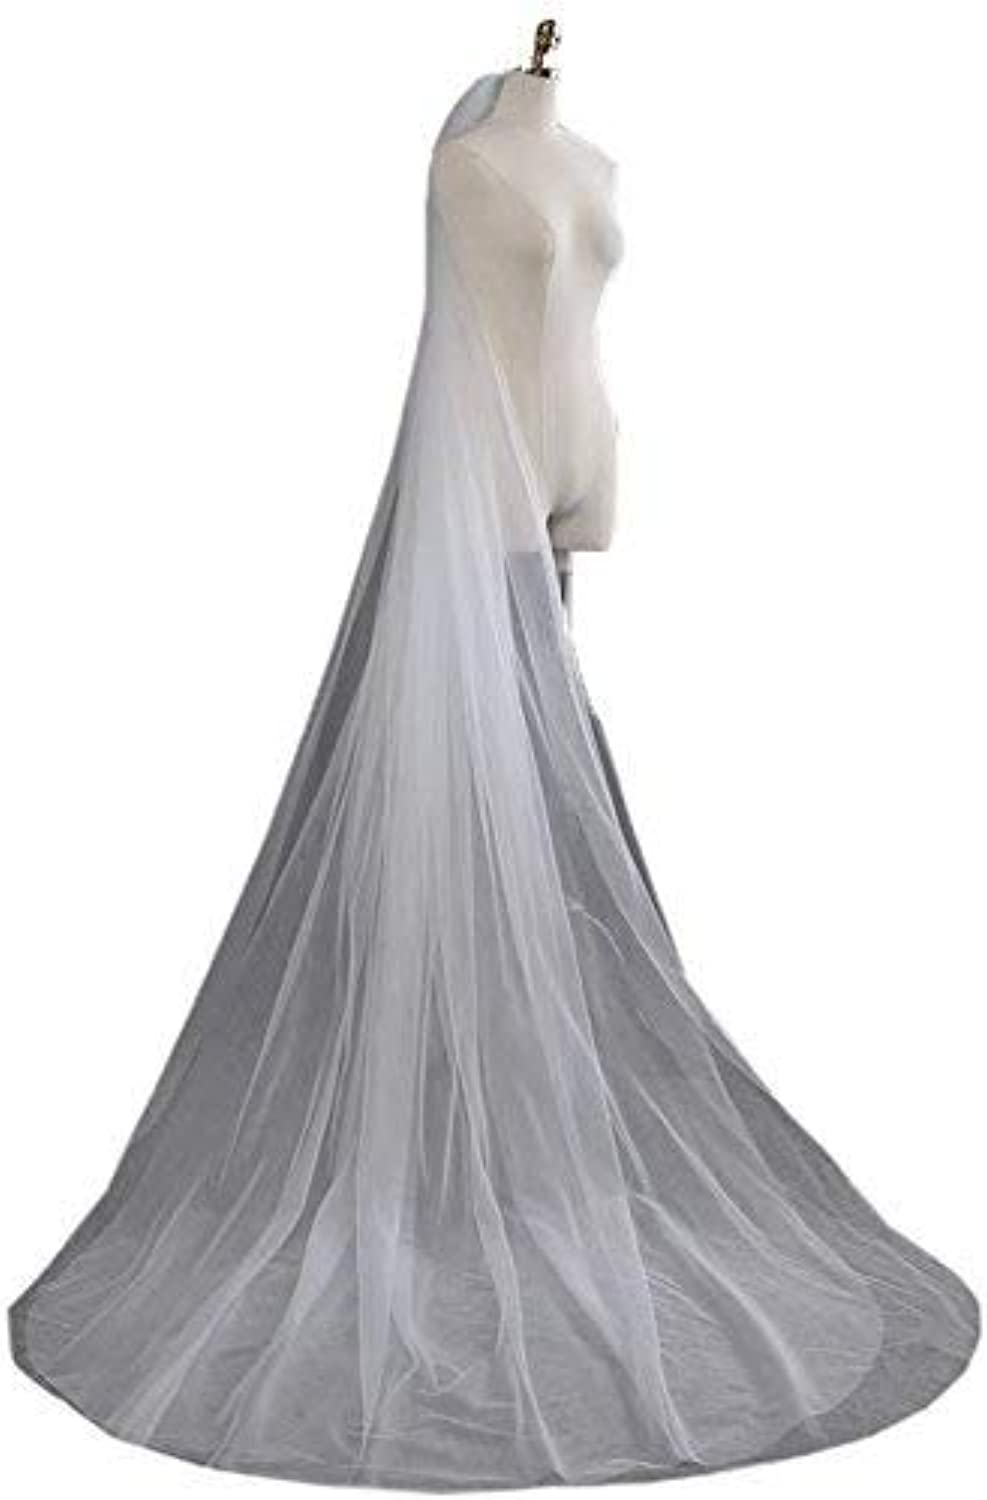 Sunny zeyu 3m Trailing Long Wedding Veil For Brides Cut Edge With Comb